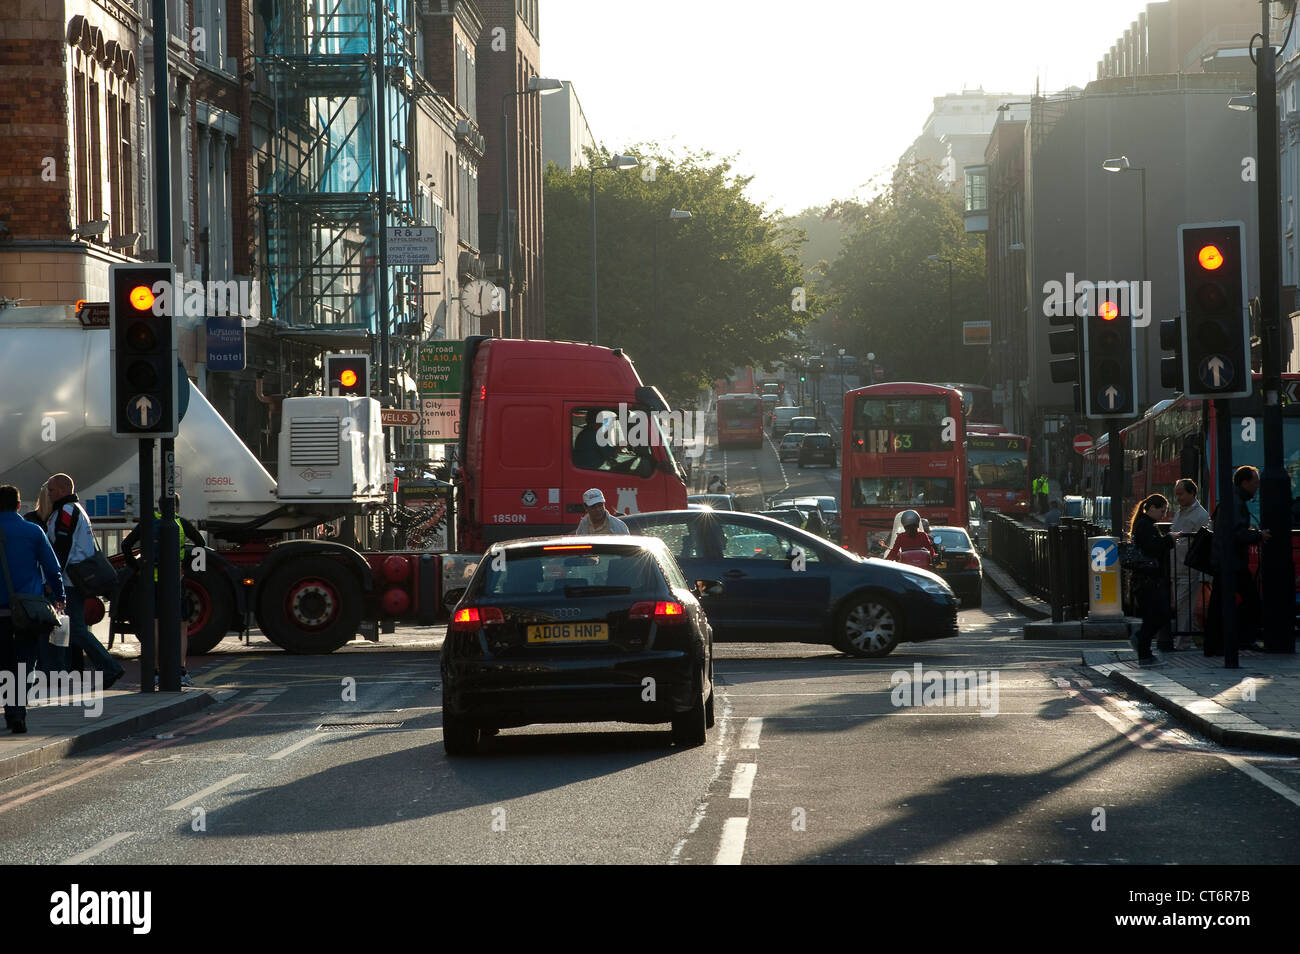 Traffic waiting at red traffic lights on a busy London street early in the morning, England. - Stock Image